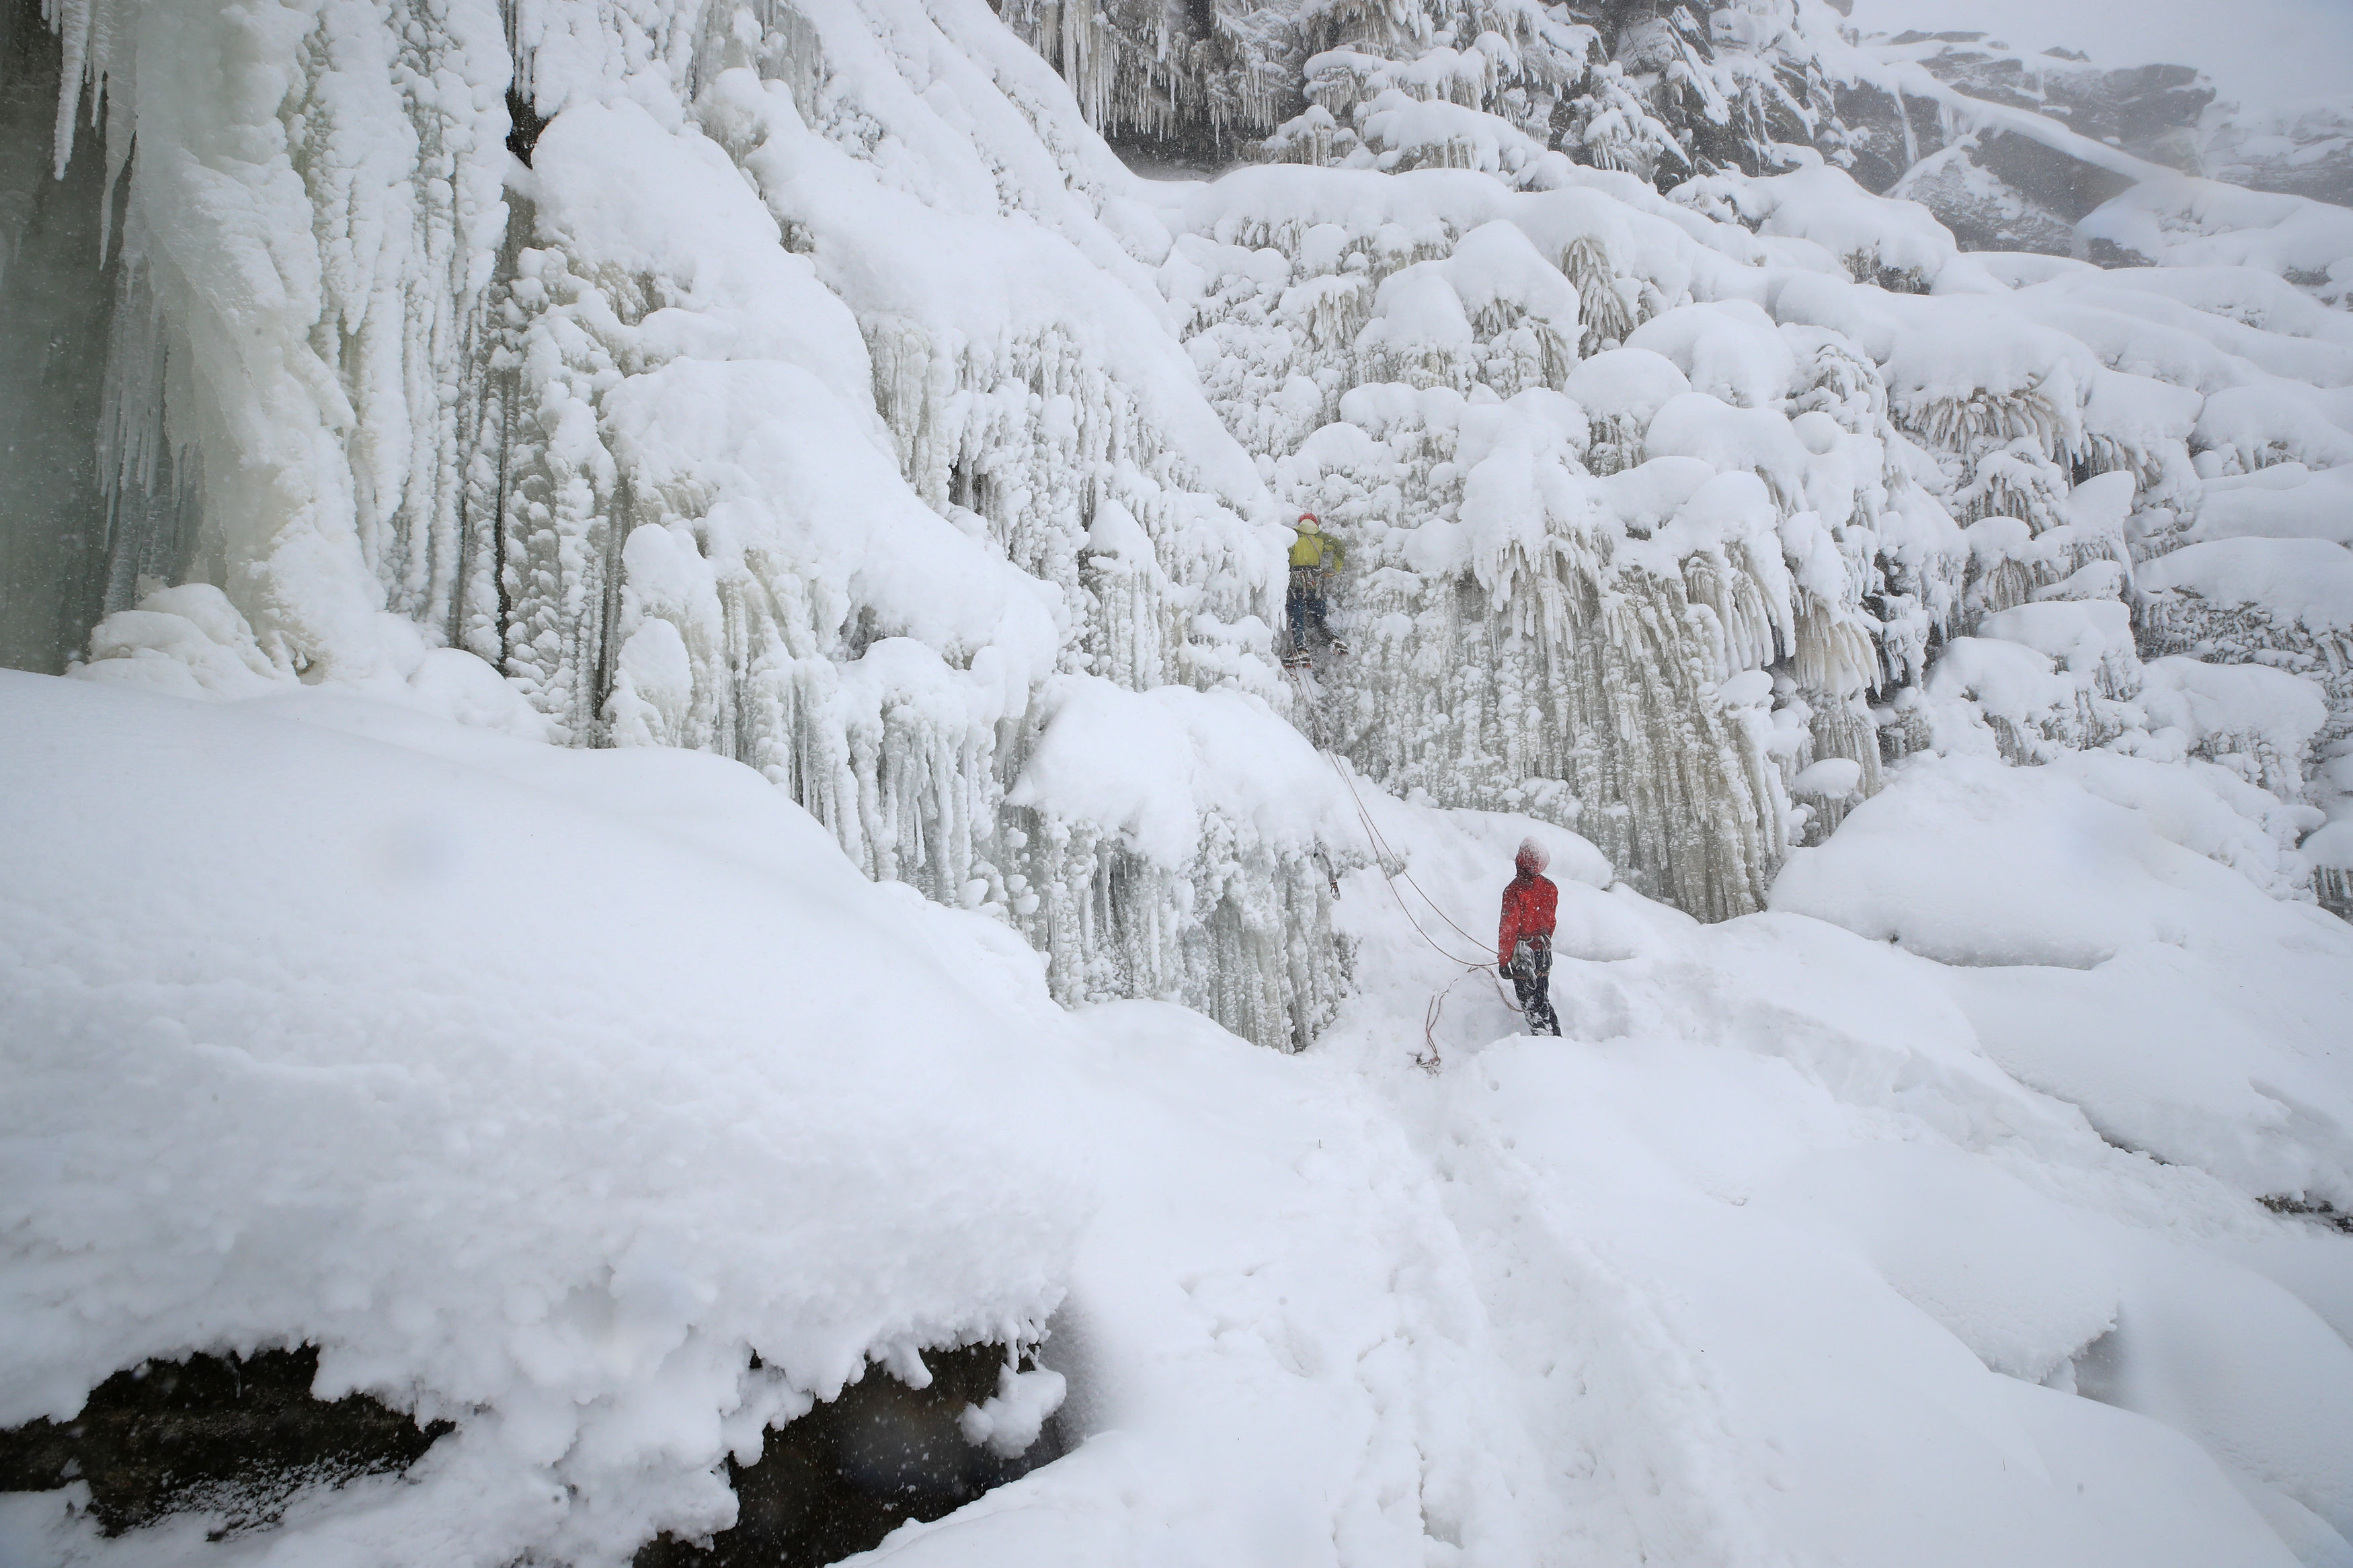 Ice climbers at Kinder Downfall, High Peak in Derbyshire